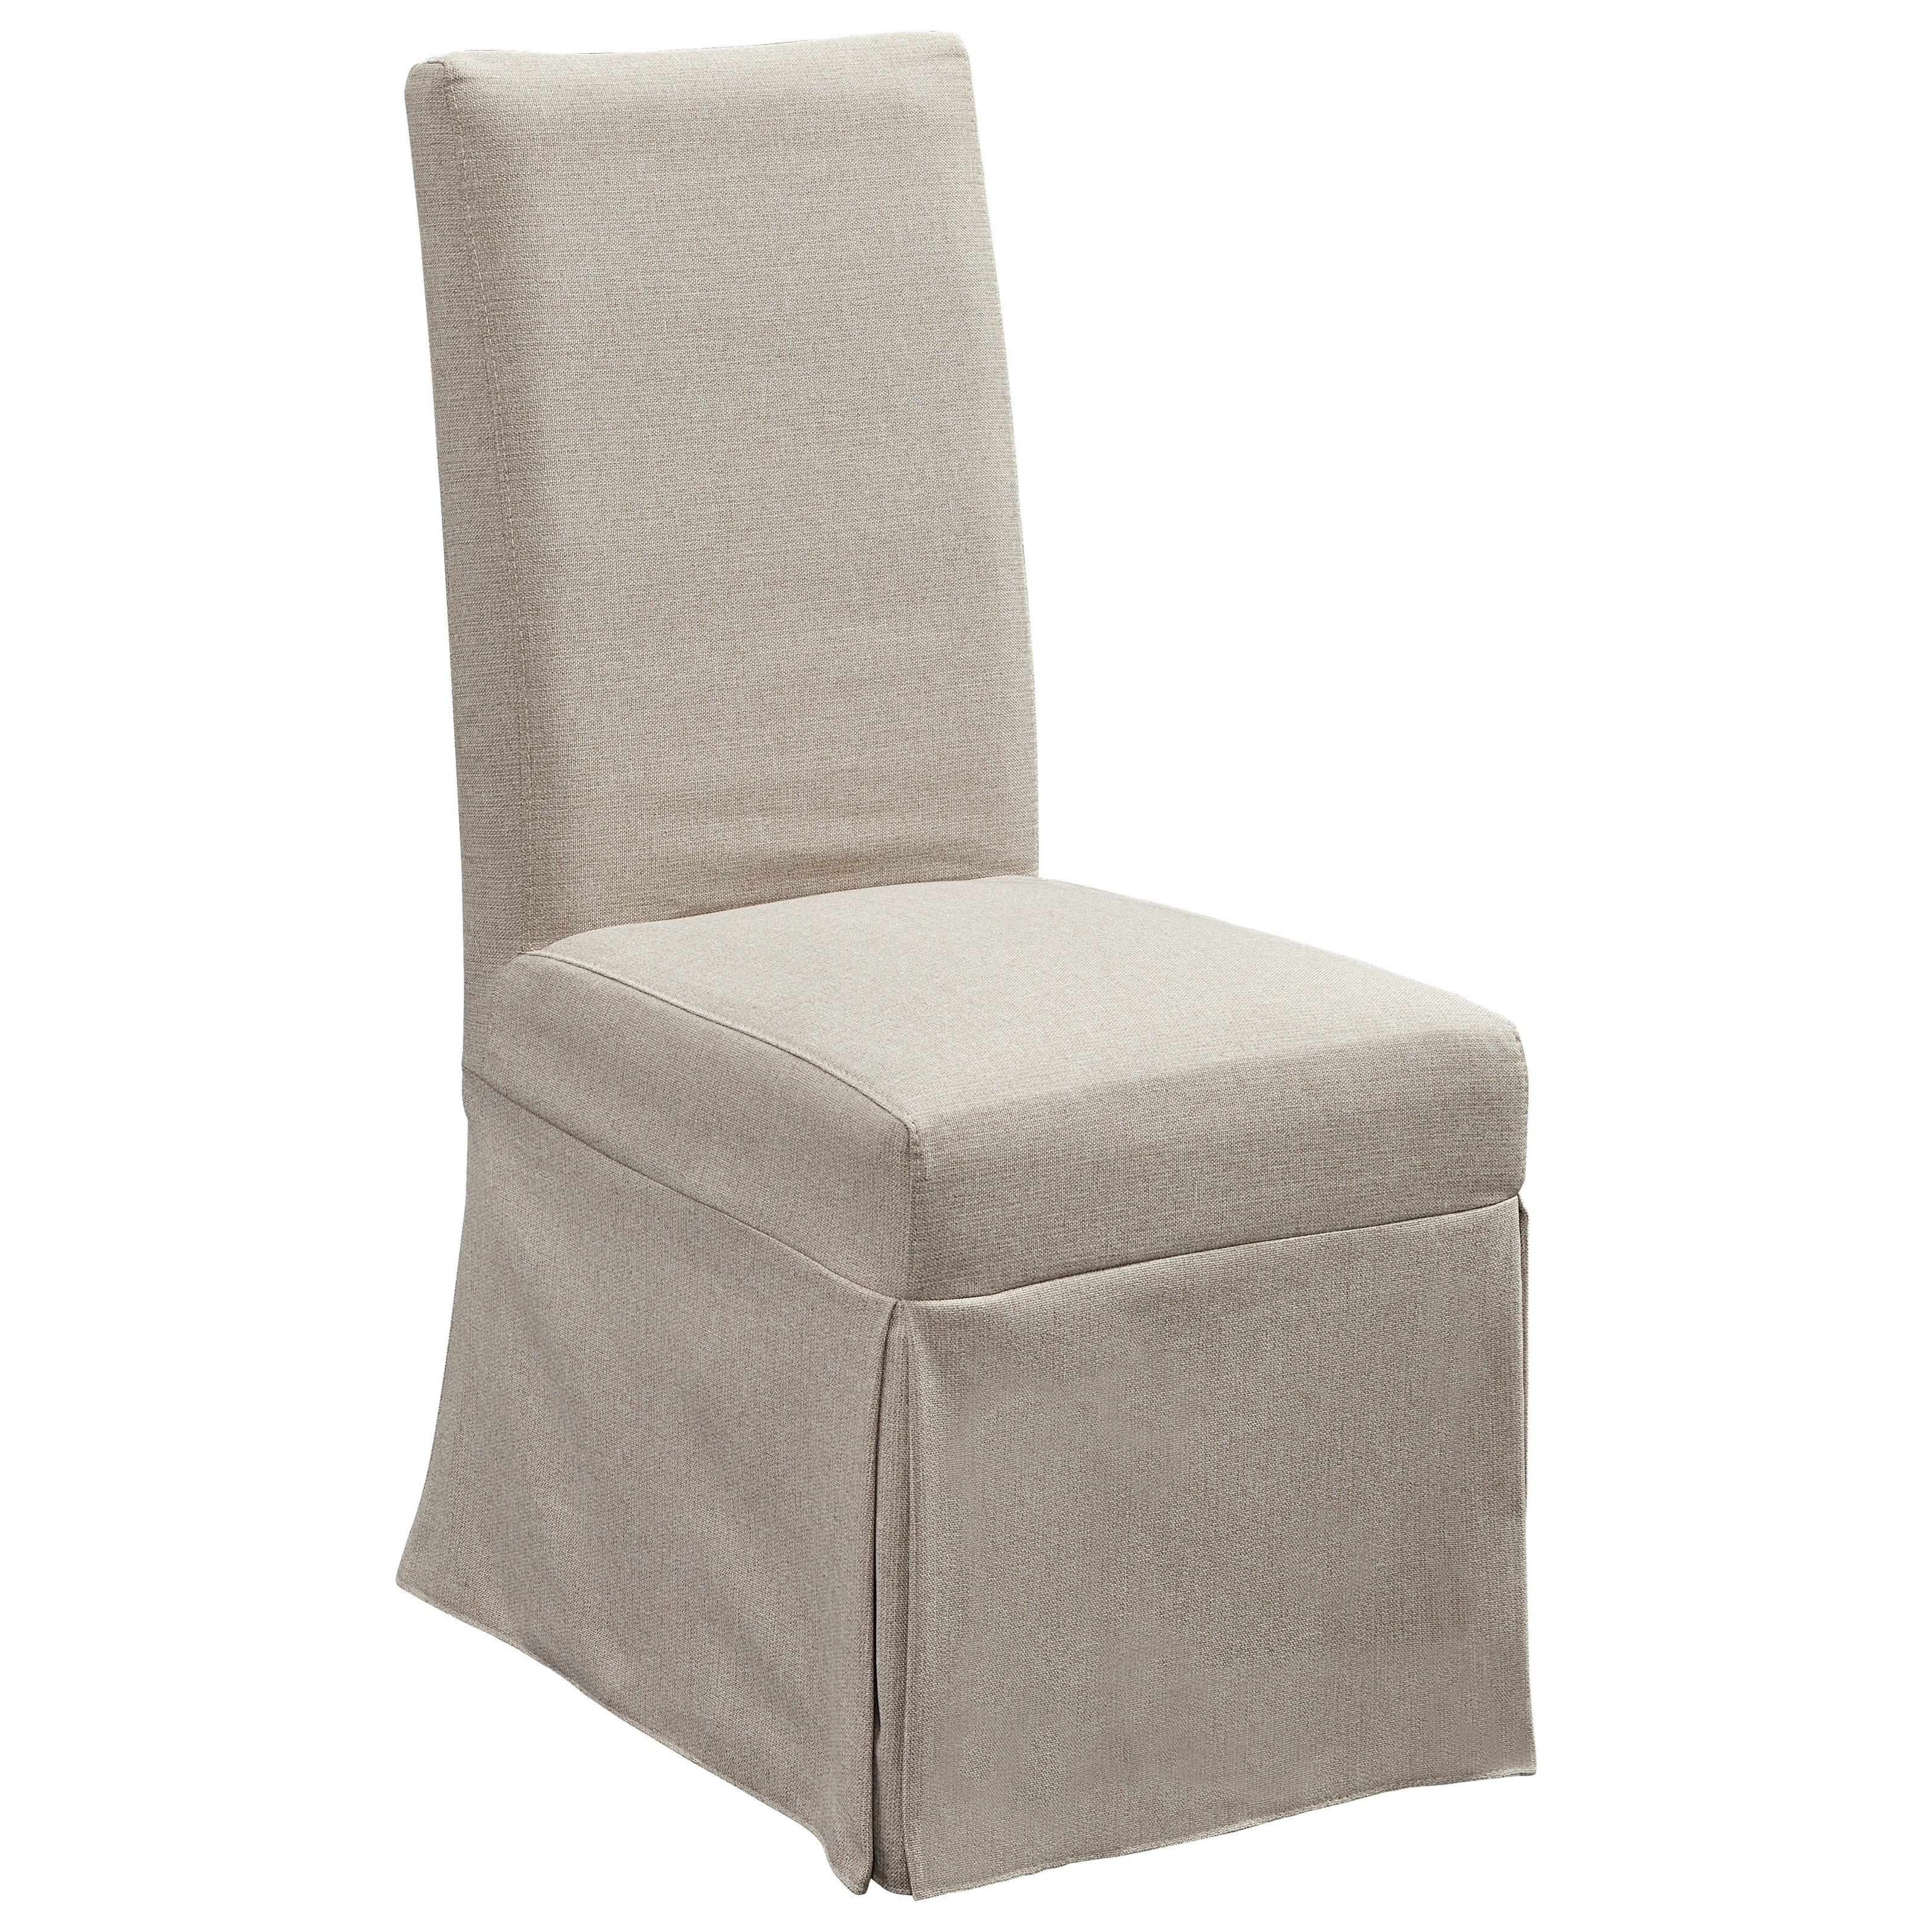 Progressive Furniture MusesUpholstered Parsons Chair W/ Cover ...